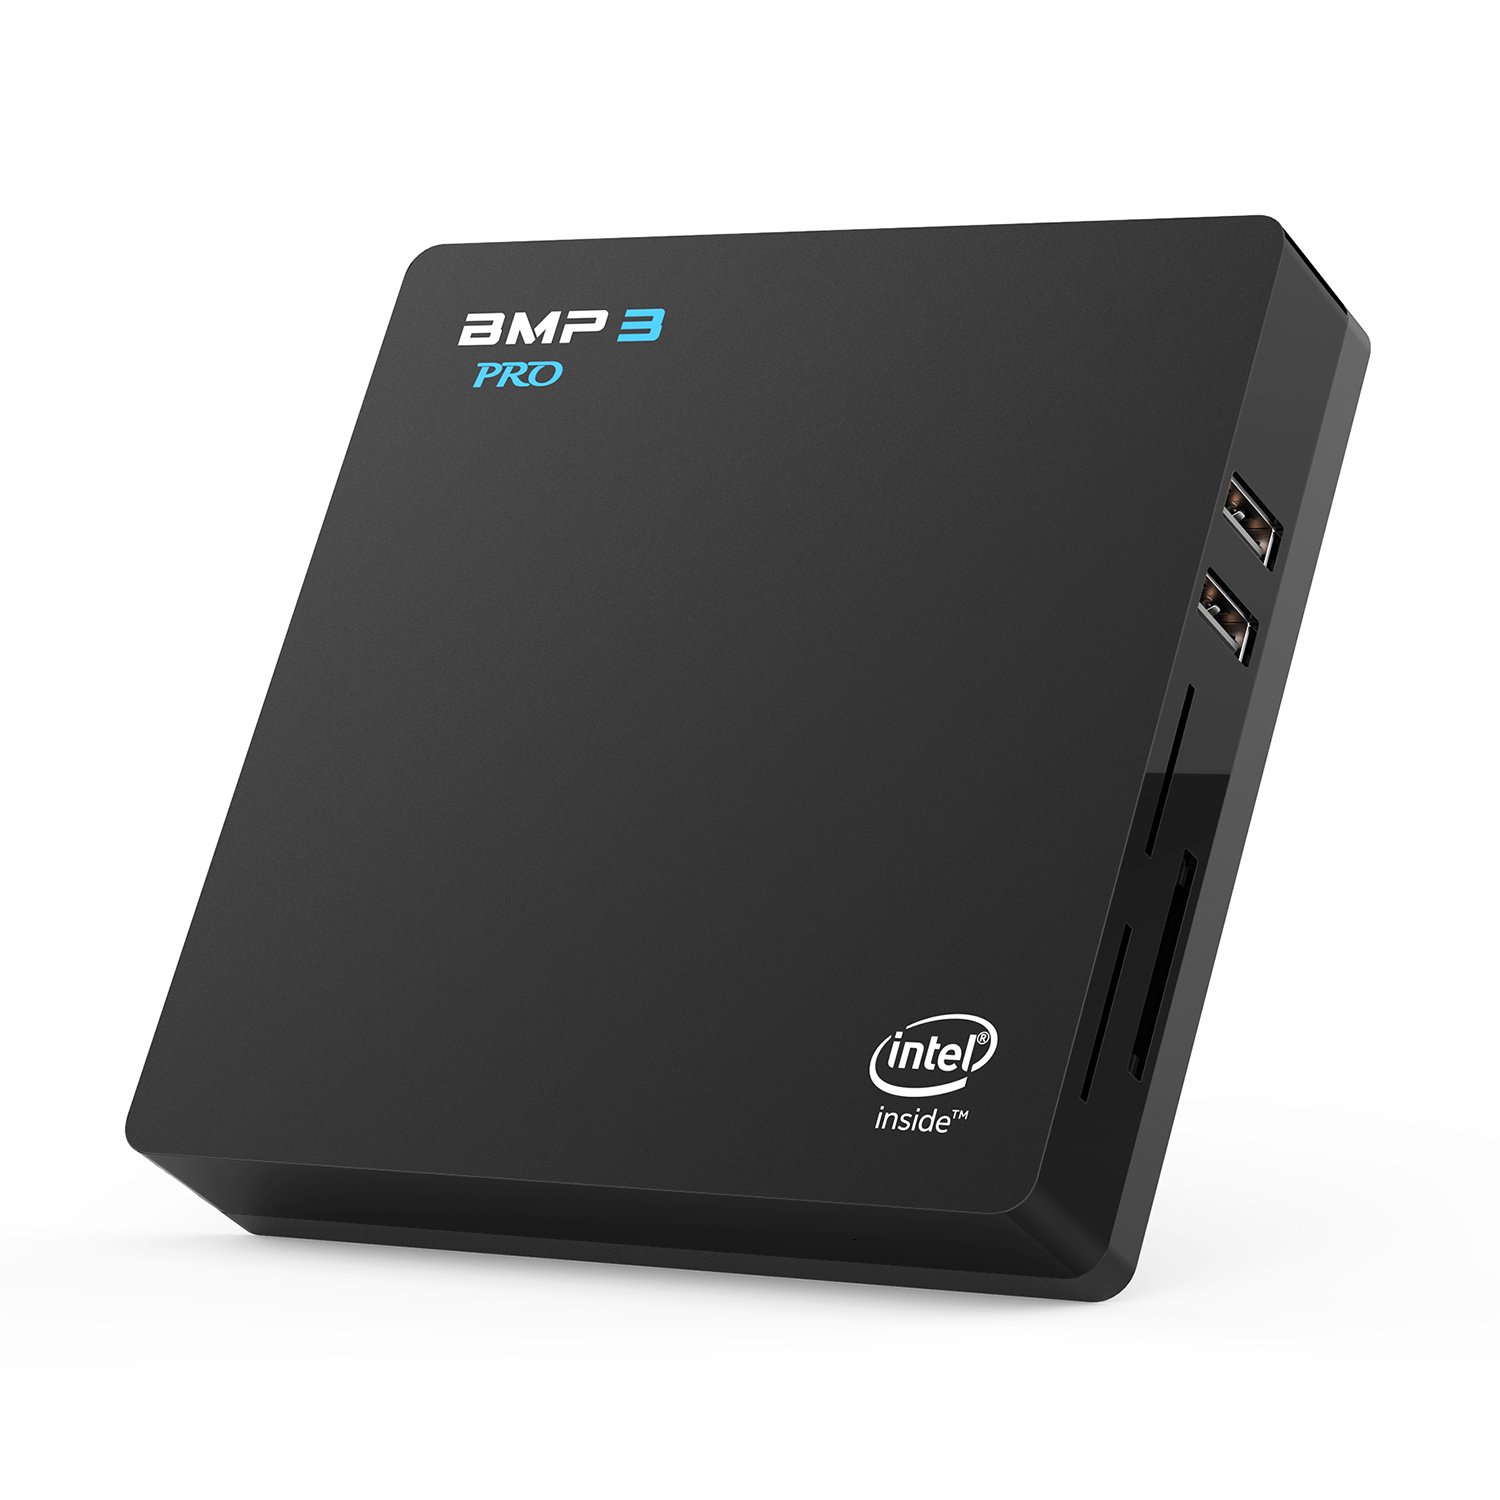 Bqeel BMP3 Pro Mini PC soporta Windows 10 Home / Procesador Intel Atom x5-Z8350 / 4 GB DDR3 + 32 GB eMMC / Intel HD Graphics / 4K / 1000 Mbps LAN / Dual-Band WiFi con Bluetooth 4.0 / USB 3.0 / USB 2.0